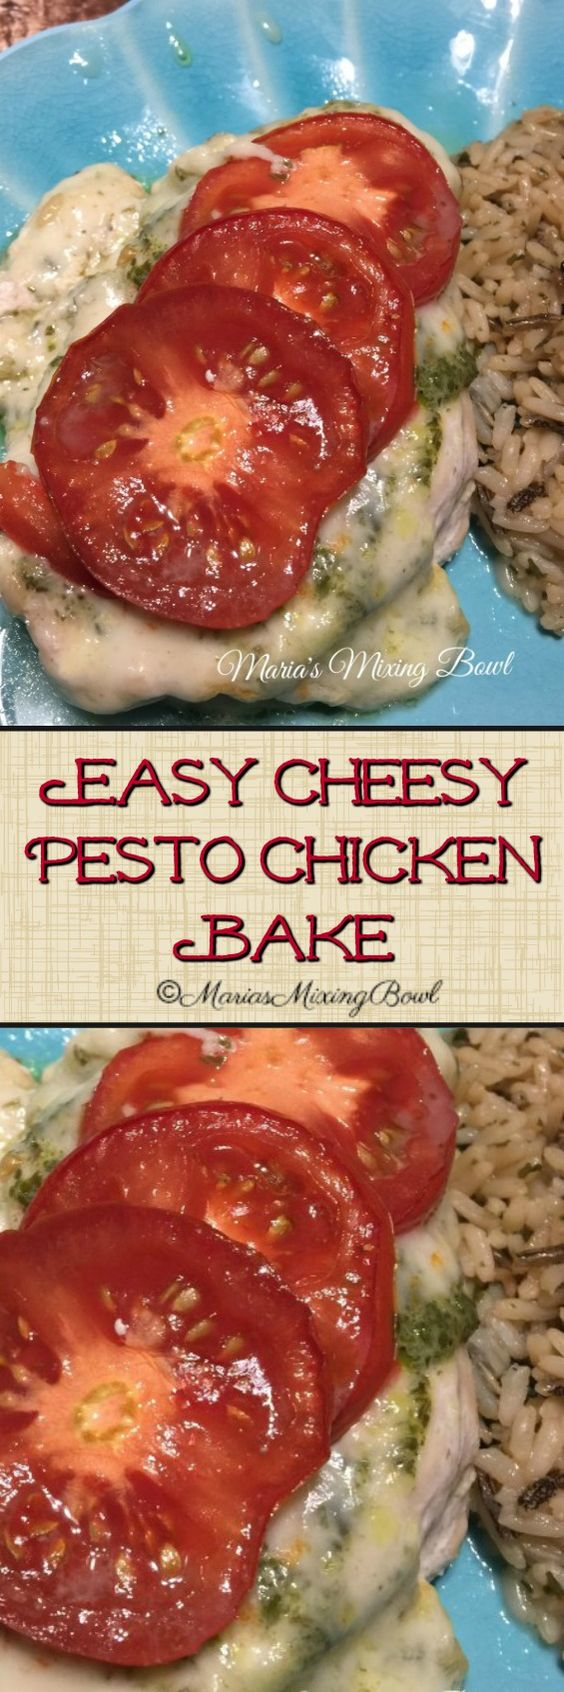 Easy Cheesy Pesto Chicken Bake is a healthy, simple,delicious and requires just minutes of prep time. And the end results are so tasty!!